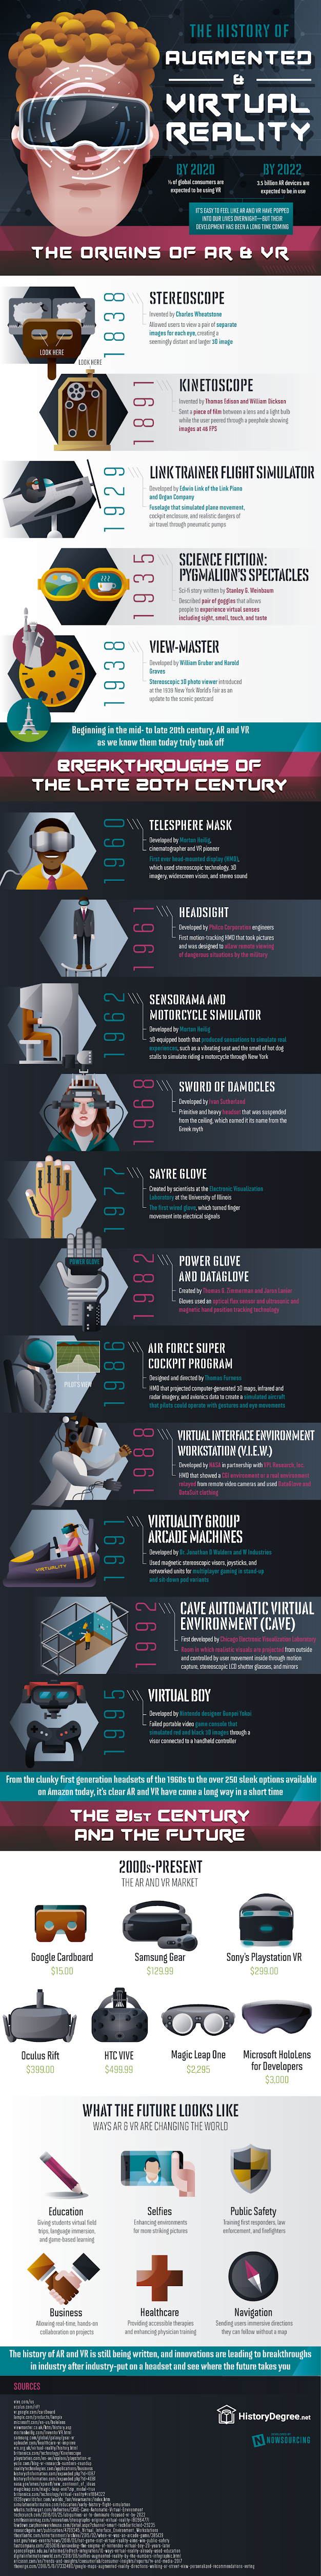 The History of Augmented and Virtual Reality #infographic #Technology #Virtual Reality #infographics #AR & VR